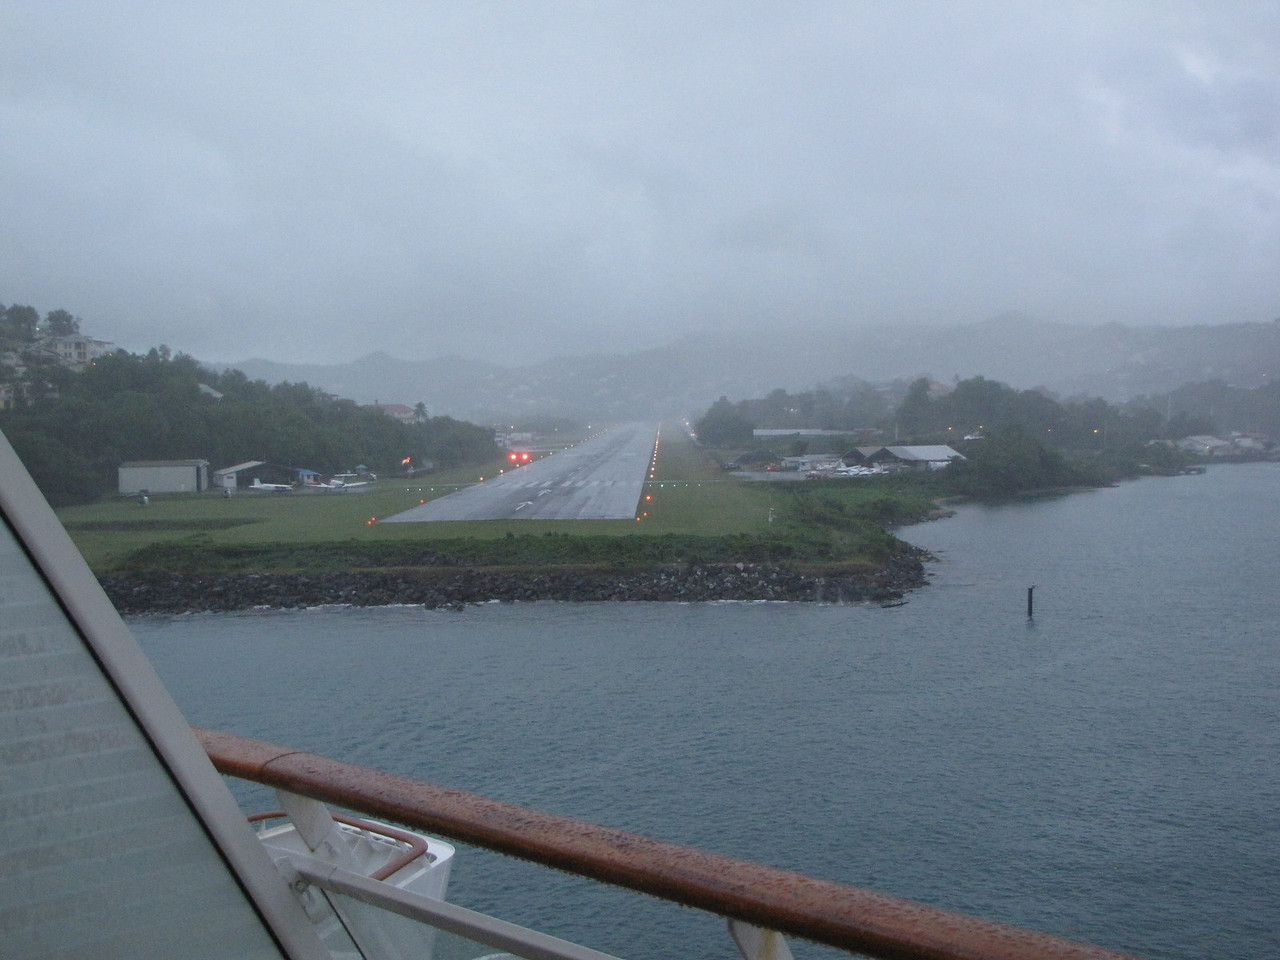 We pass by the George Charles Airport as we leave Castries Harbour.